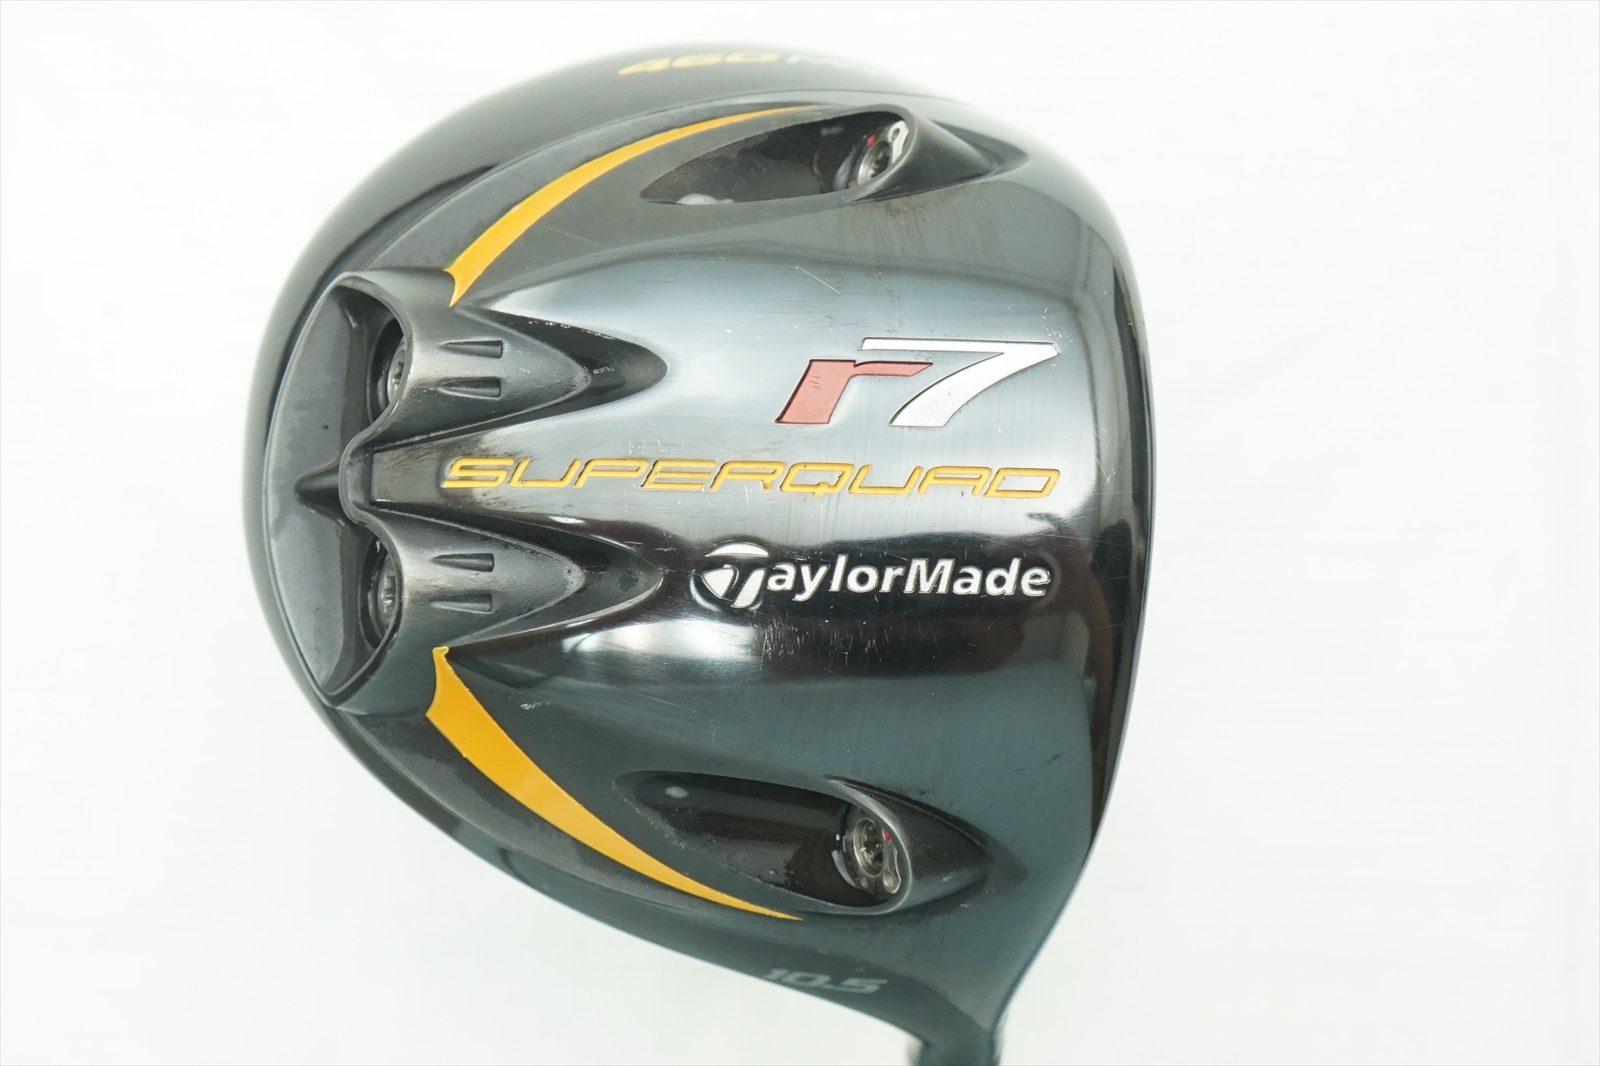 TAYLORMADE R7 SUPERQUAD DRIVER FOR WINDOWS 8